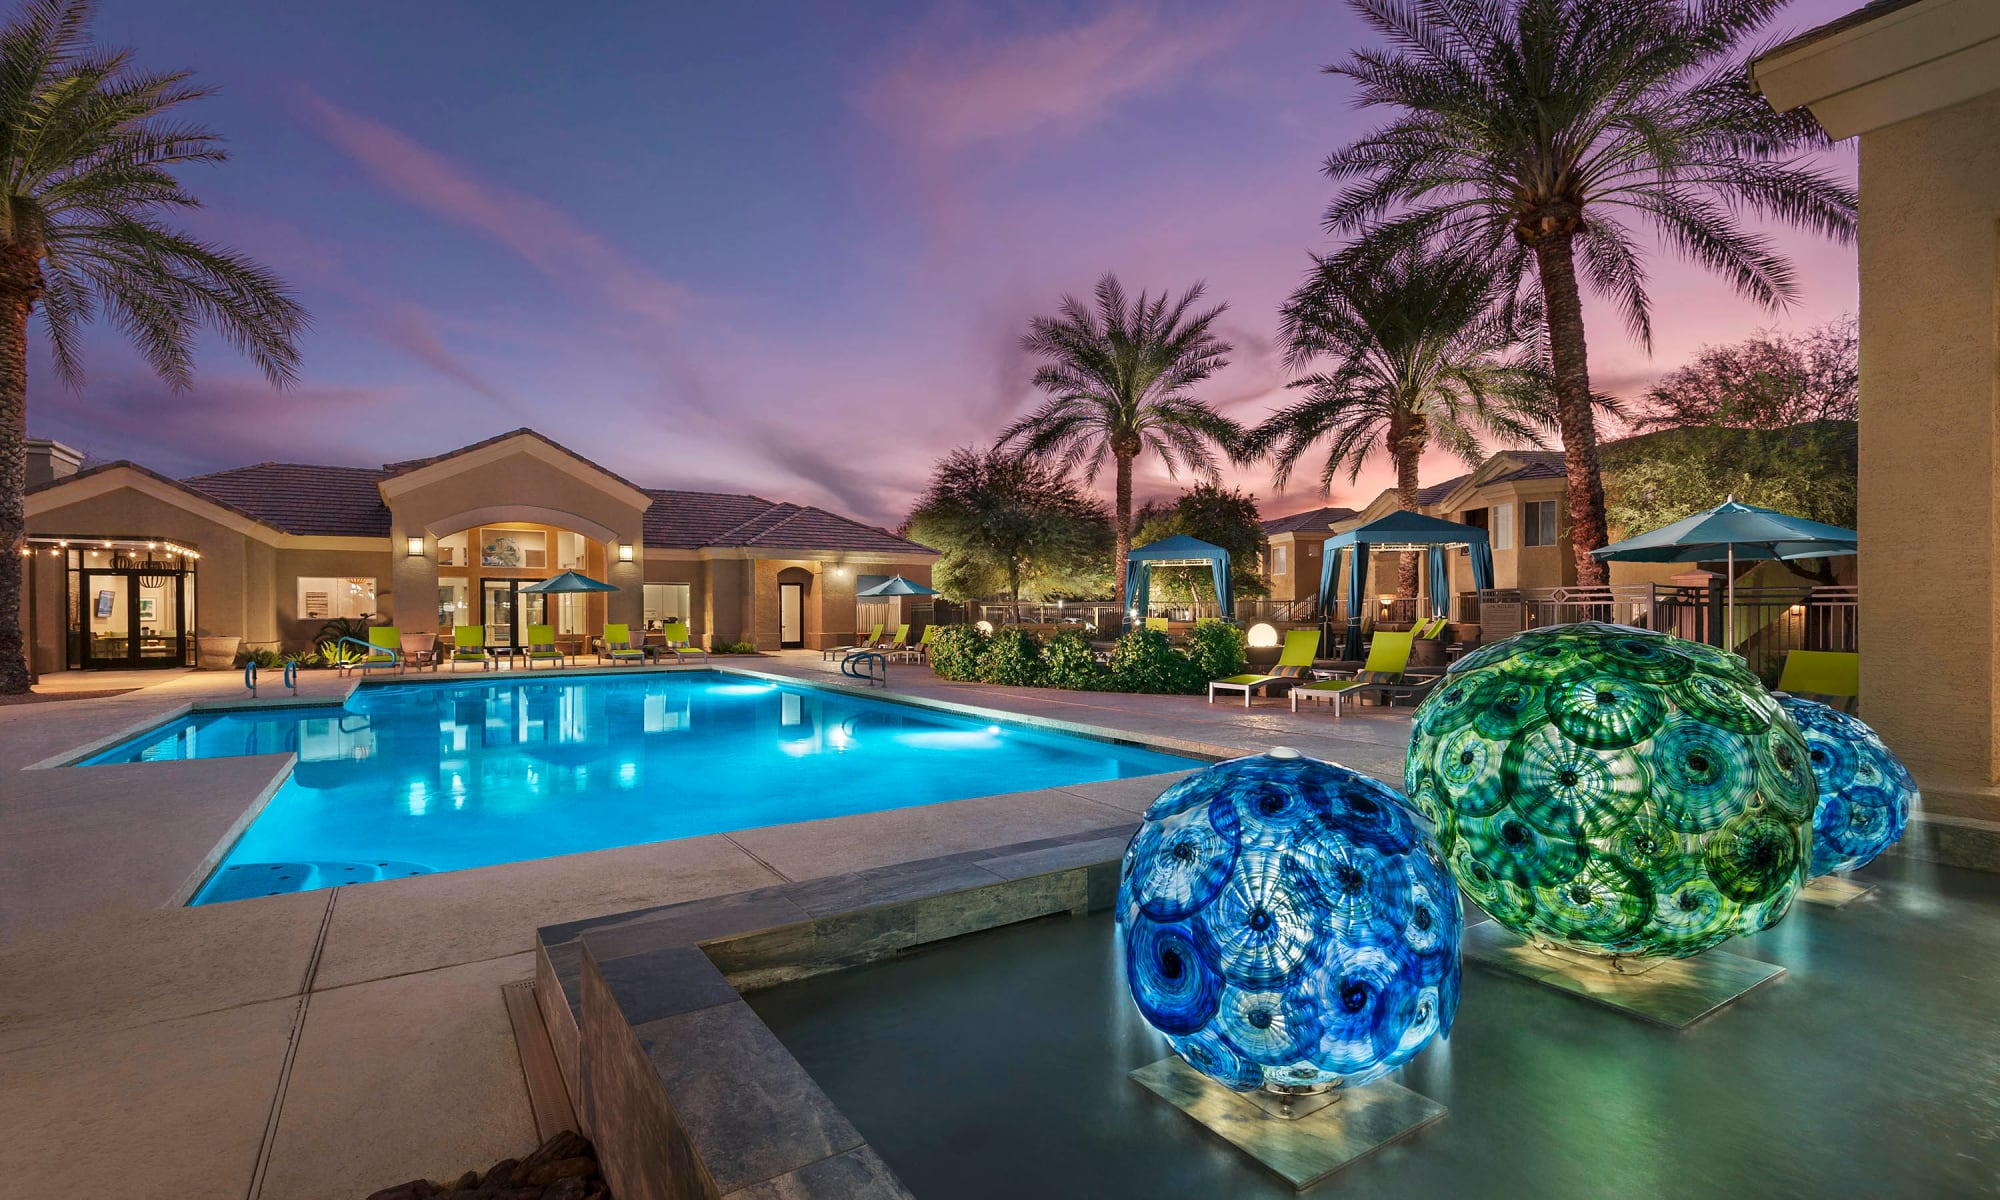 Apartments in Chandler, Arizona at Mira Santi